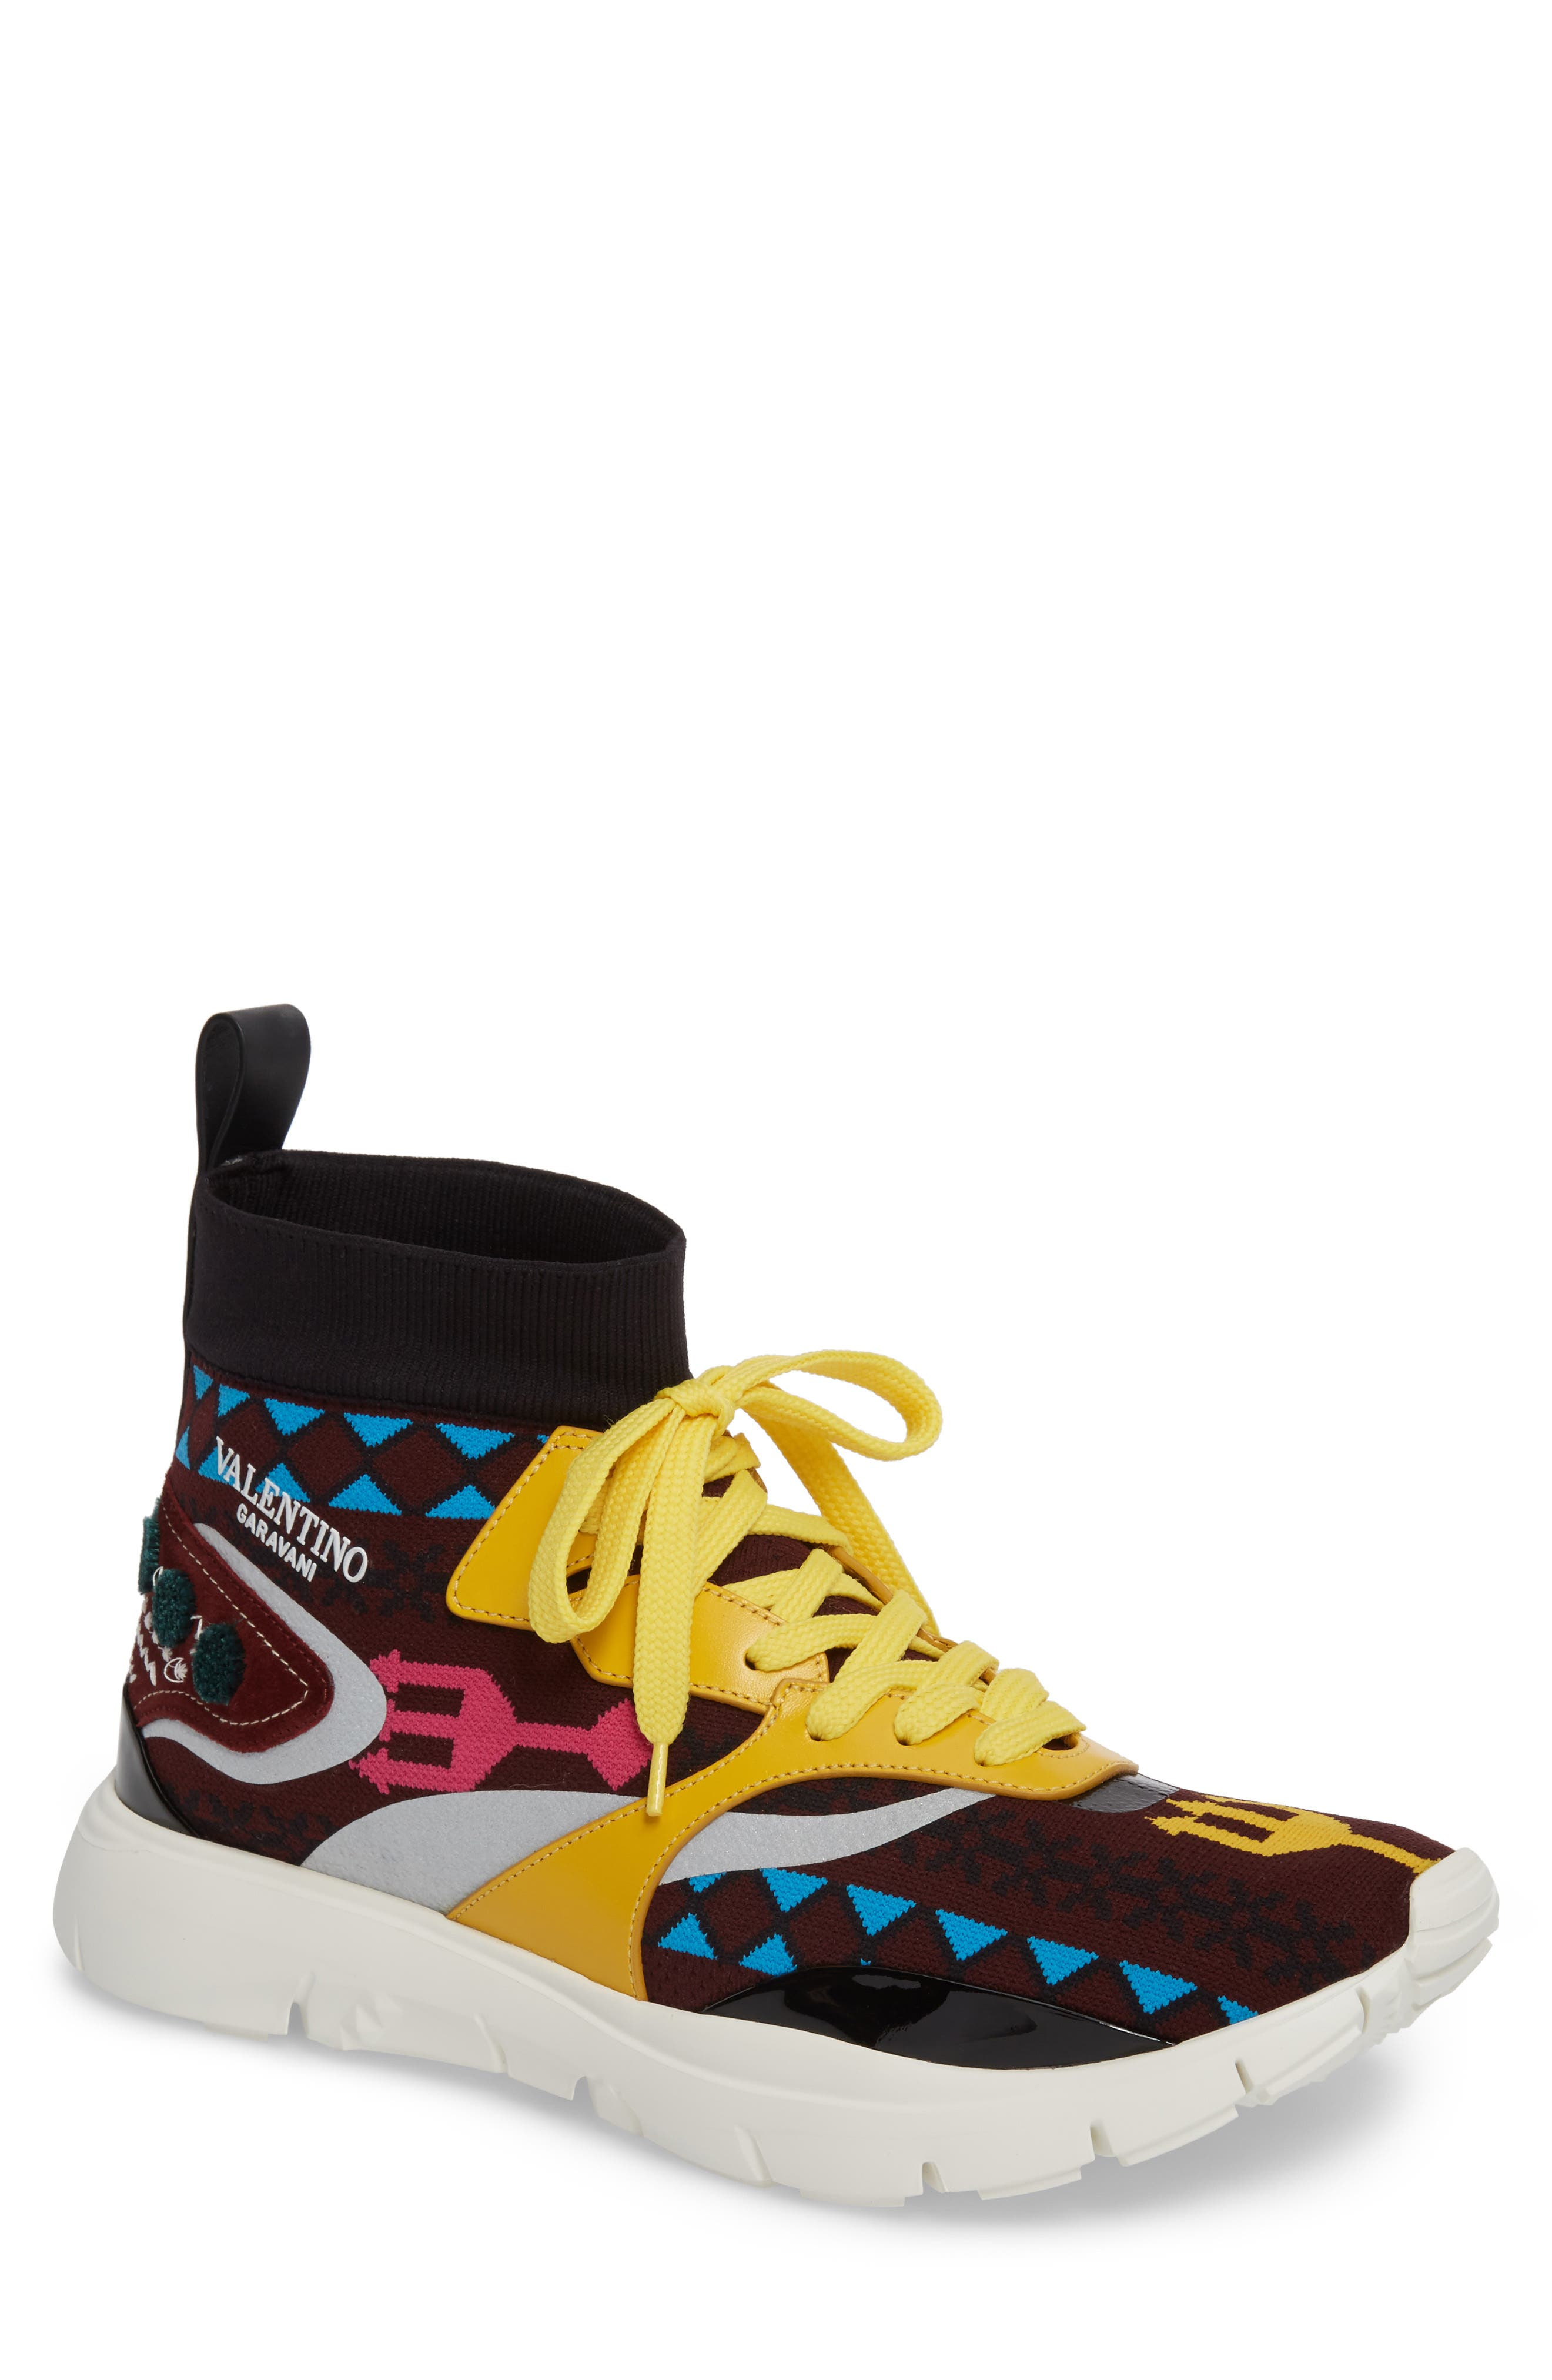 Heroes Embroidery Sneaker,                             Main thumbnail 1, color,                             939